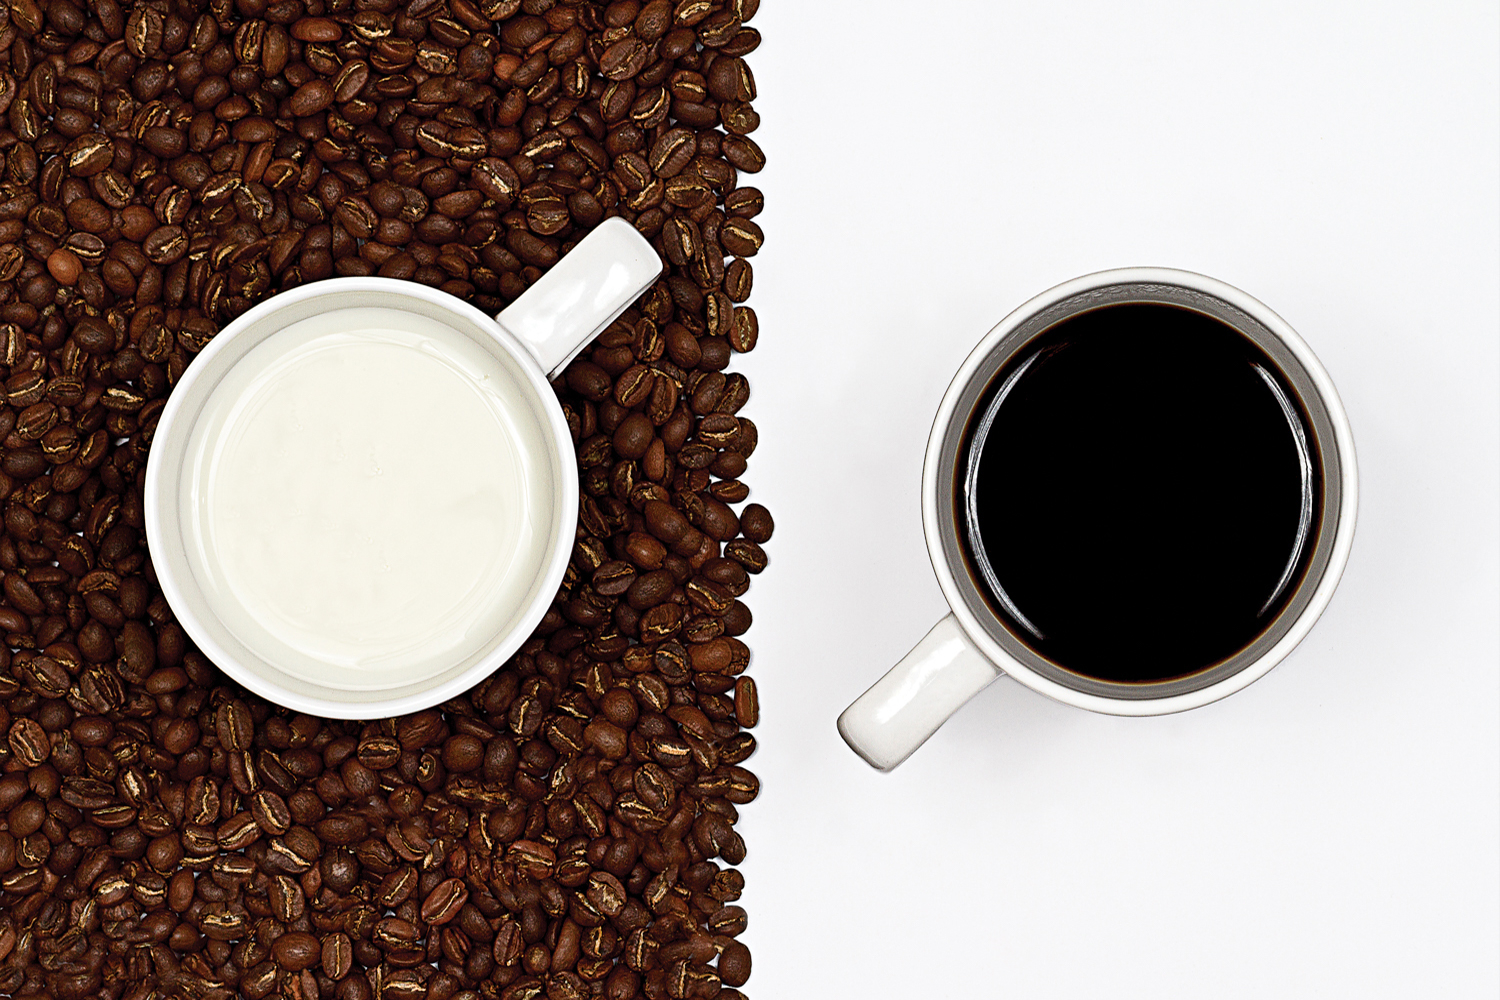 aerial view of two white mugs, one full of milk sitting on brown coffee beans and the other full of black coffee sitting on white